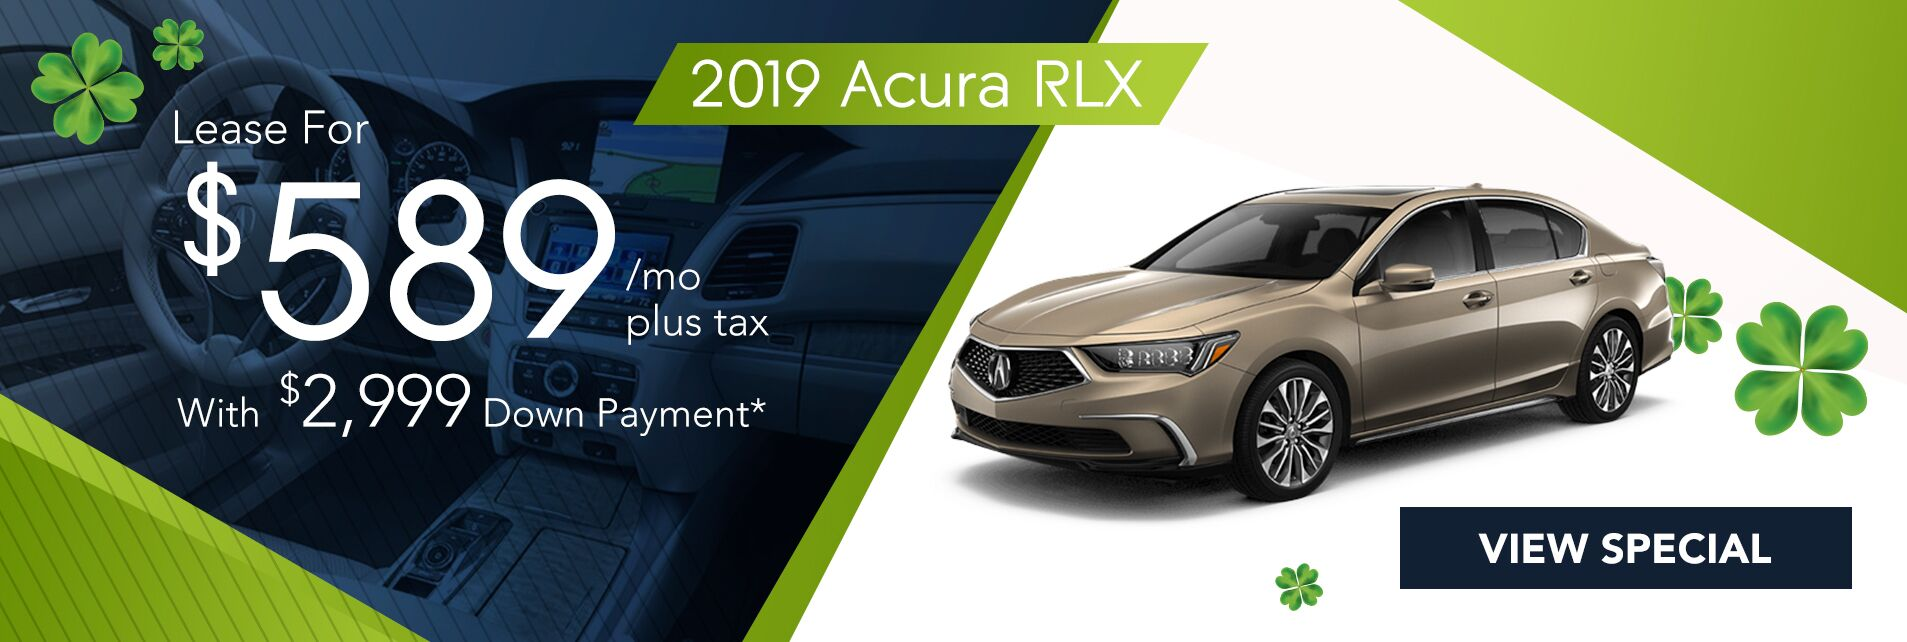 Lease a 2019 Acura RLX Tech for $588/36Mo. with $2,999 Down